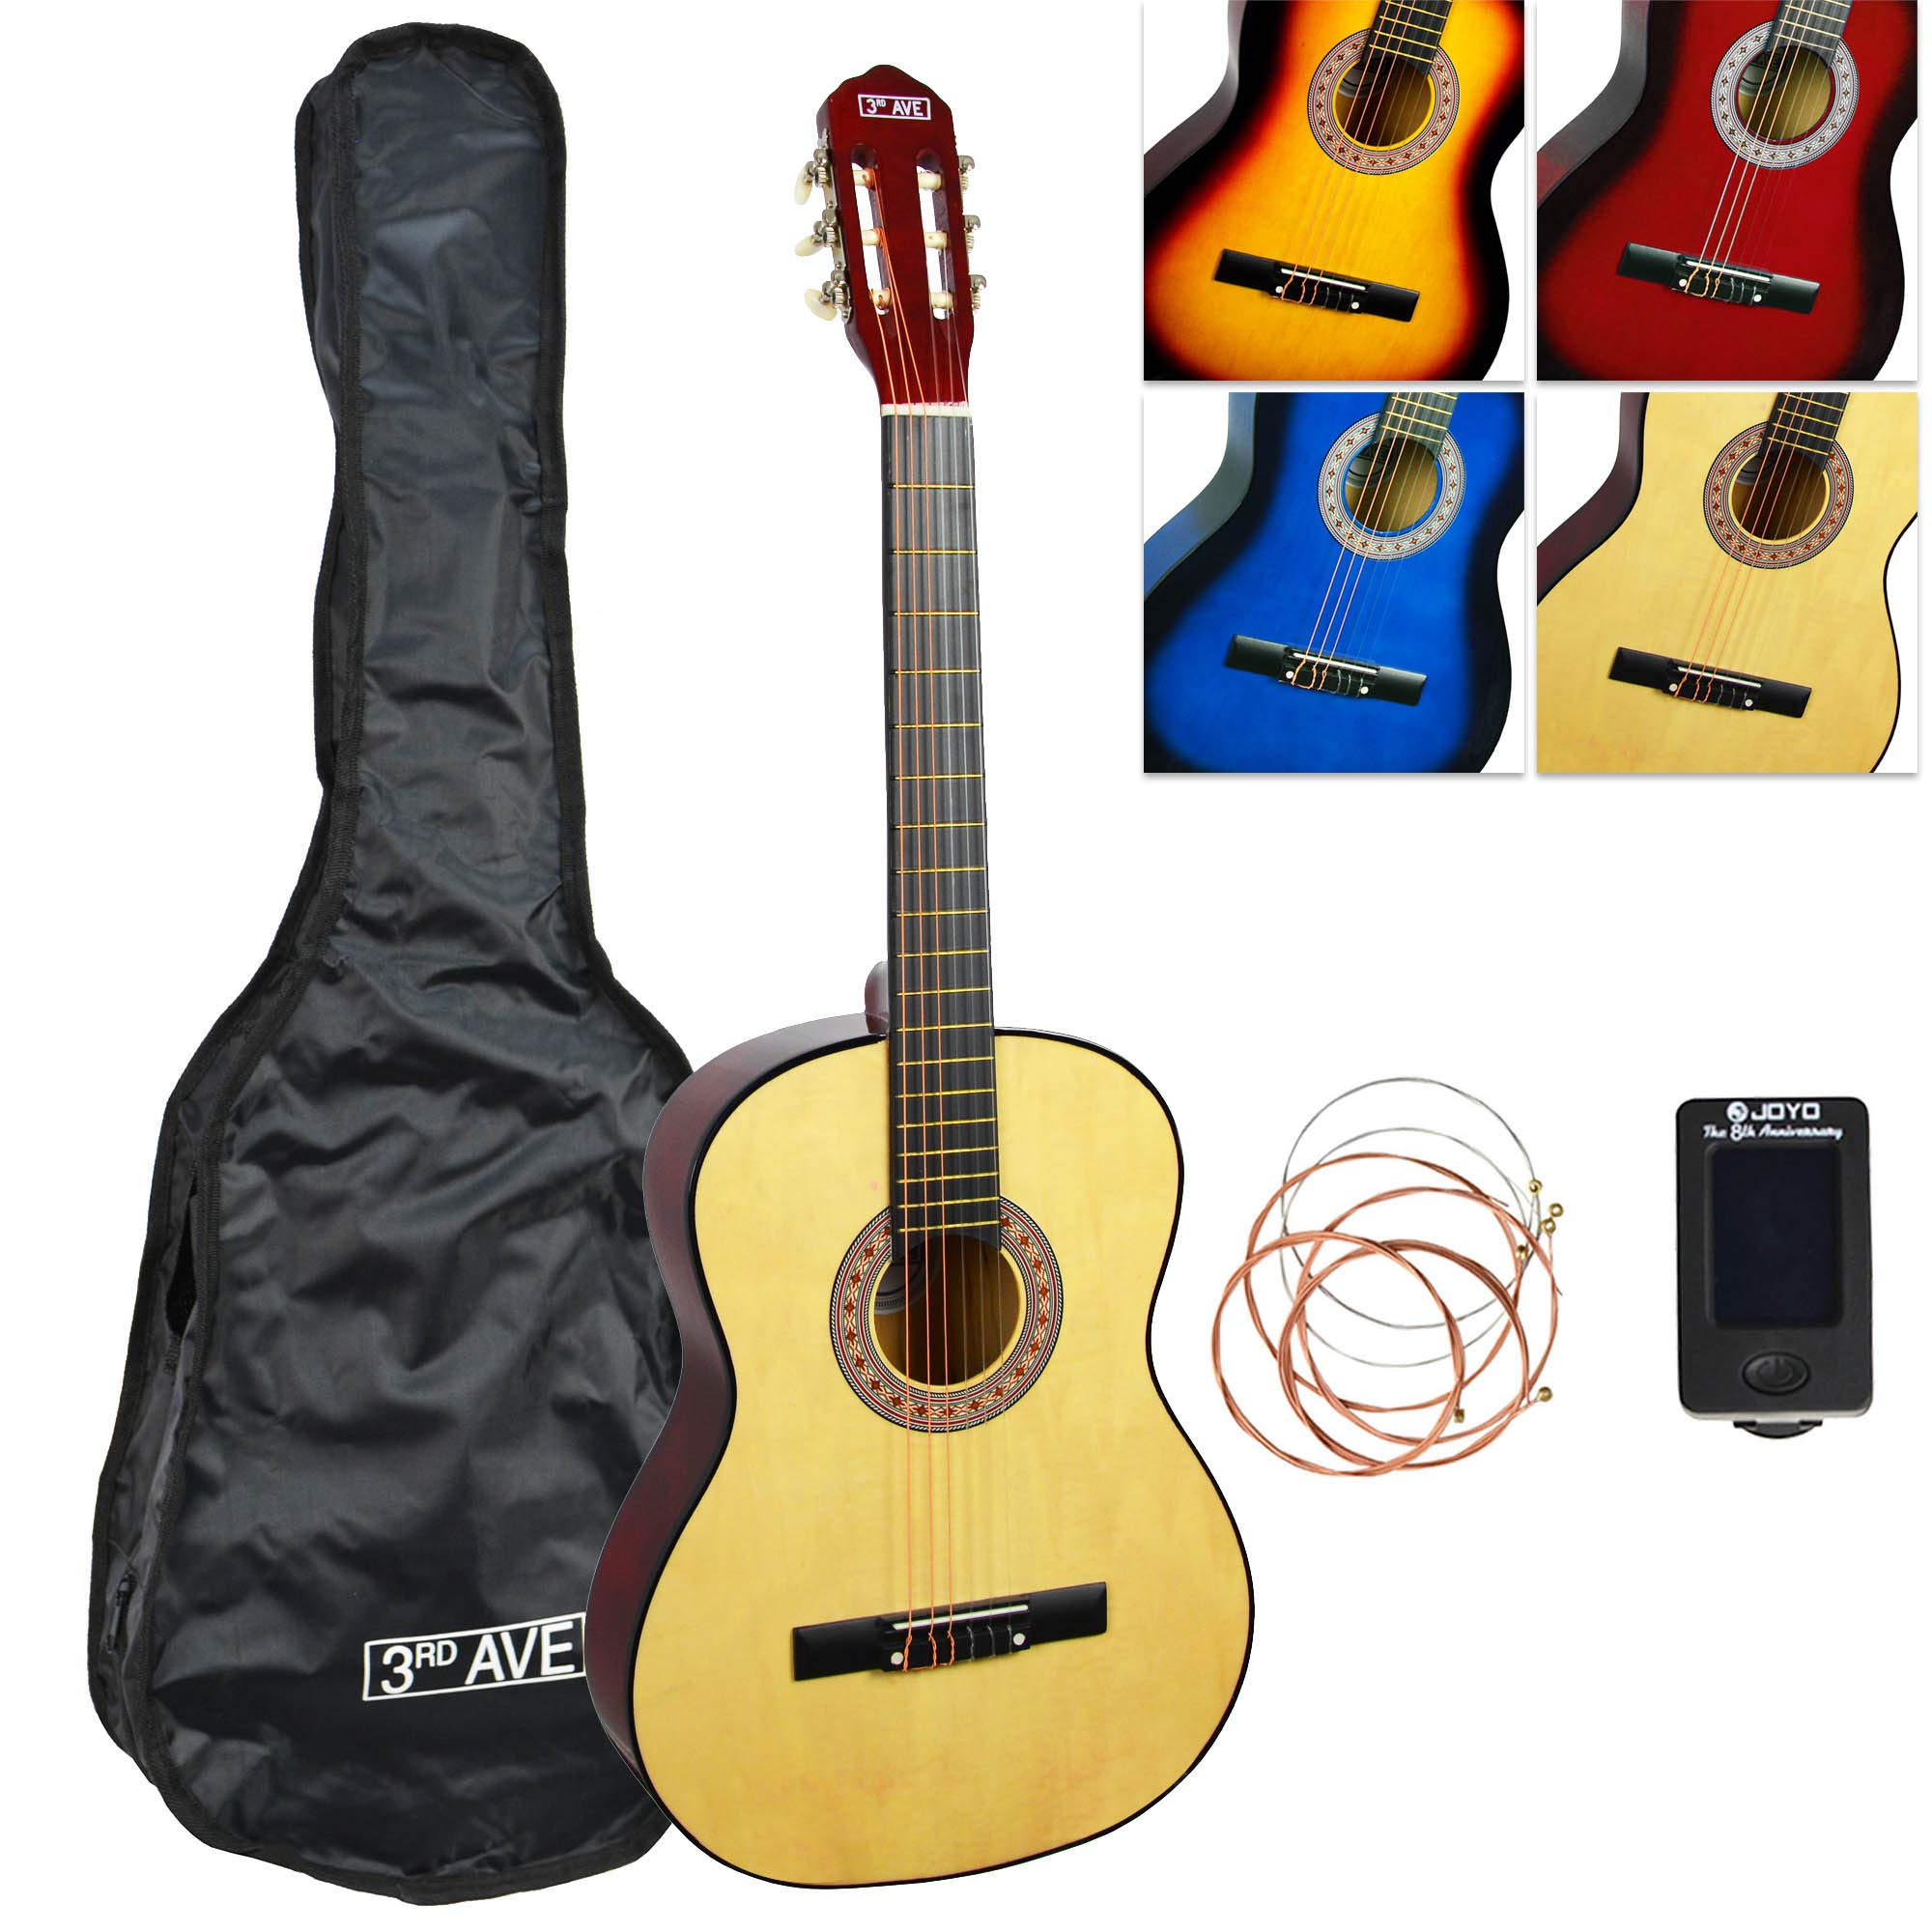 3rd Avenue 3/4 Size Classical Guitar Starter Pack - Natural